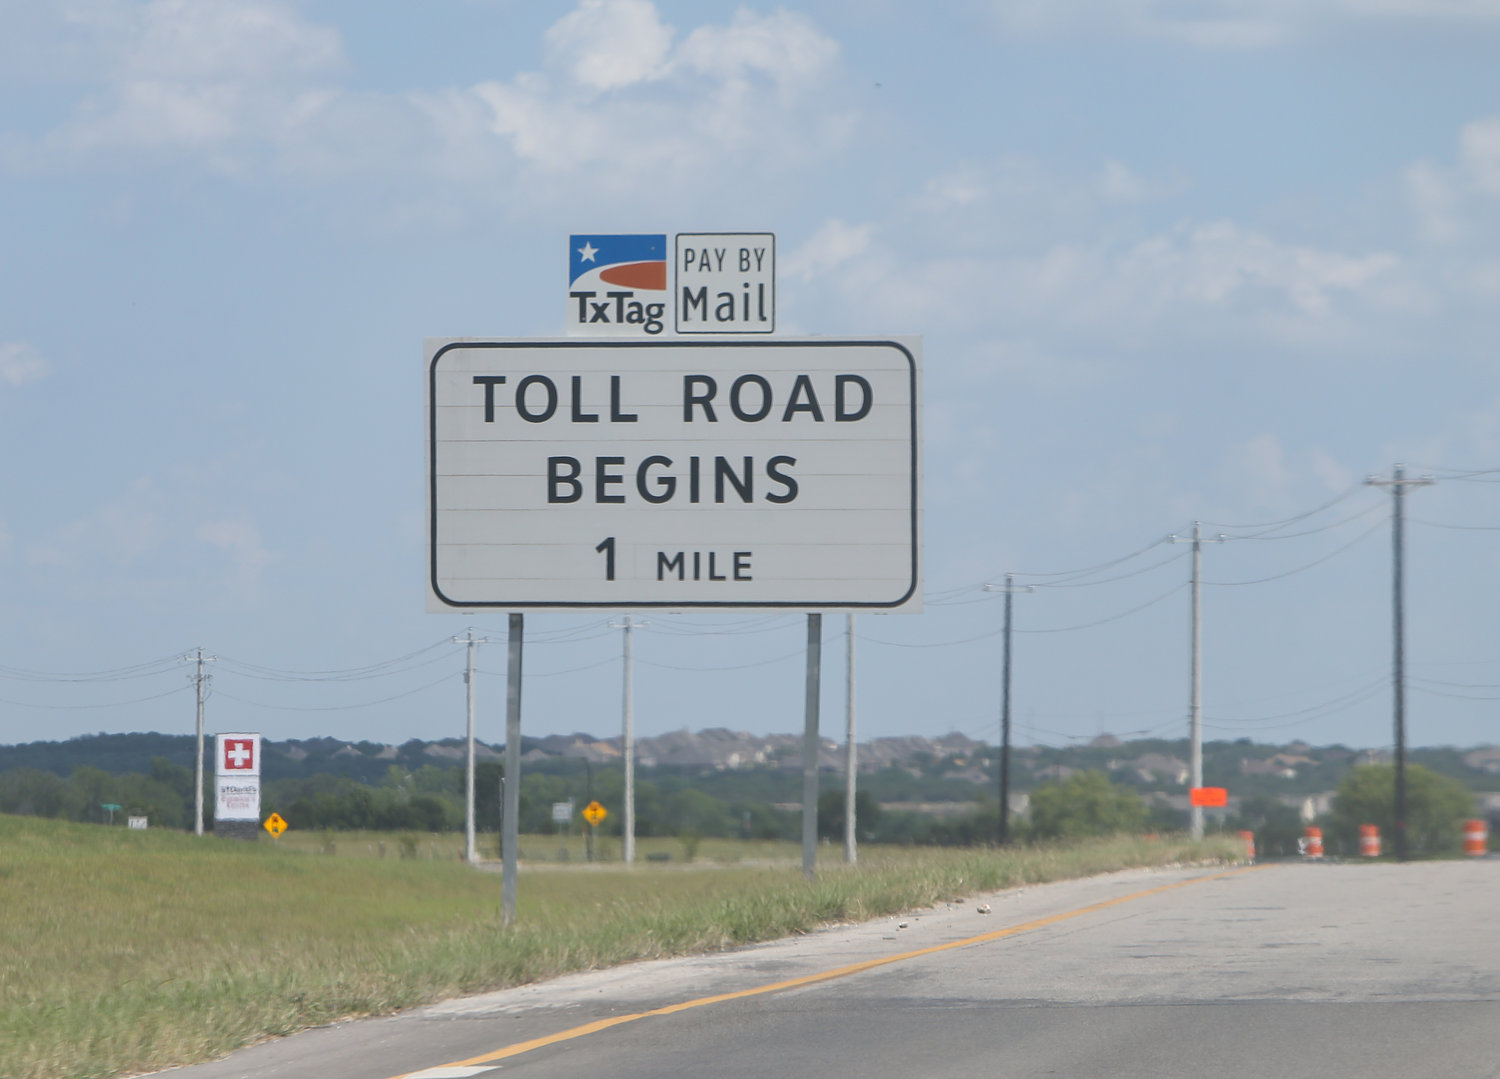 The Central Texas Mobility Authority plans to add tolled and non-tolled lanes to a 9-mile stretch of U.S. 183 from Lakeline Boulevard to MoPac Expressway beginning in 2021.